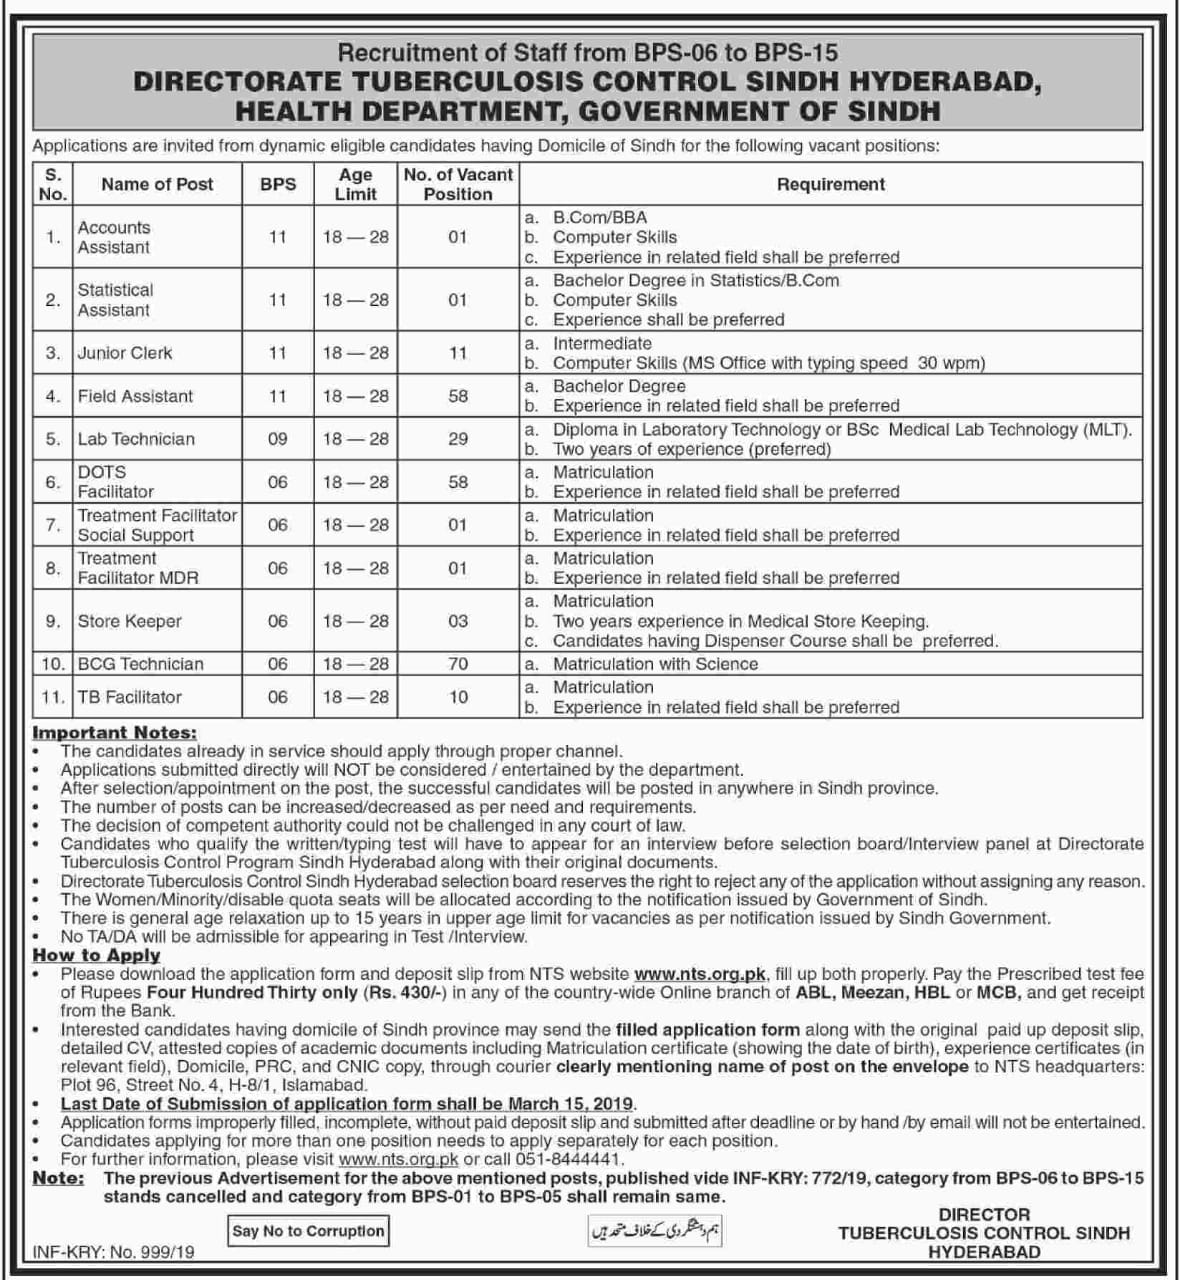 Vacancies in Health Department, Directorate Tuberculosis Control Sindh